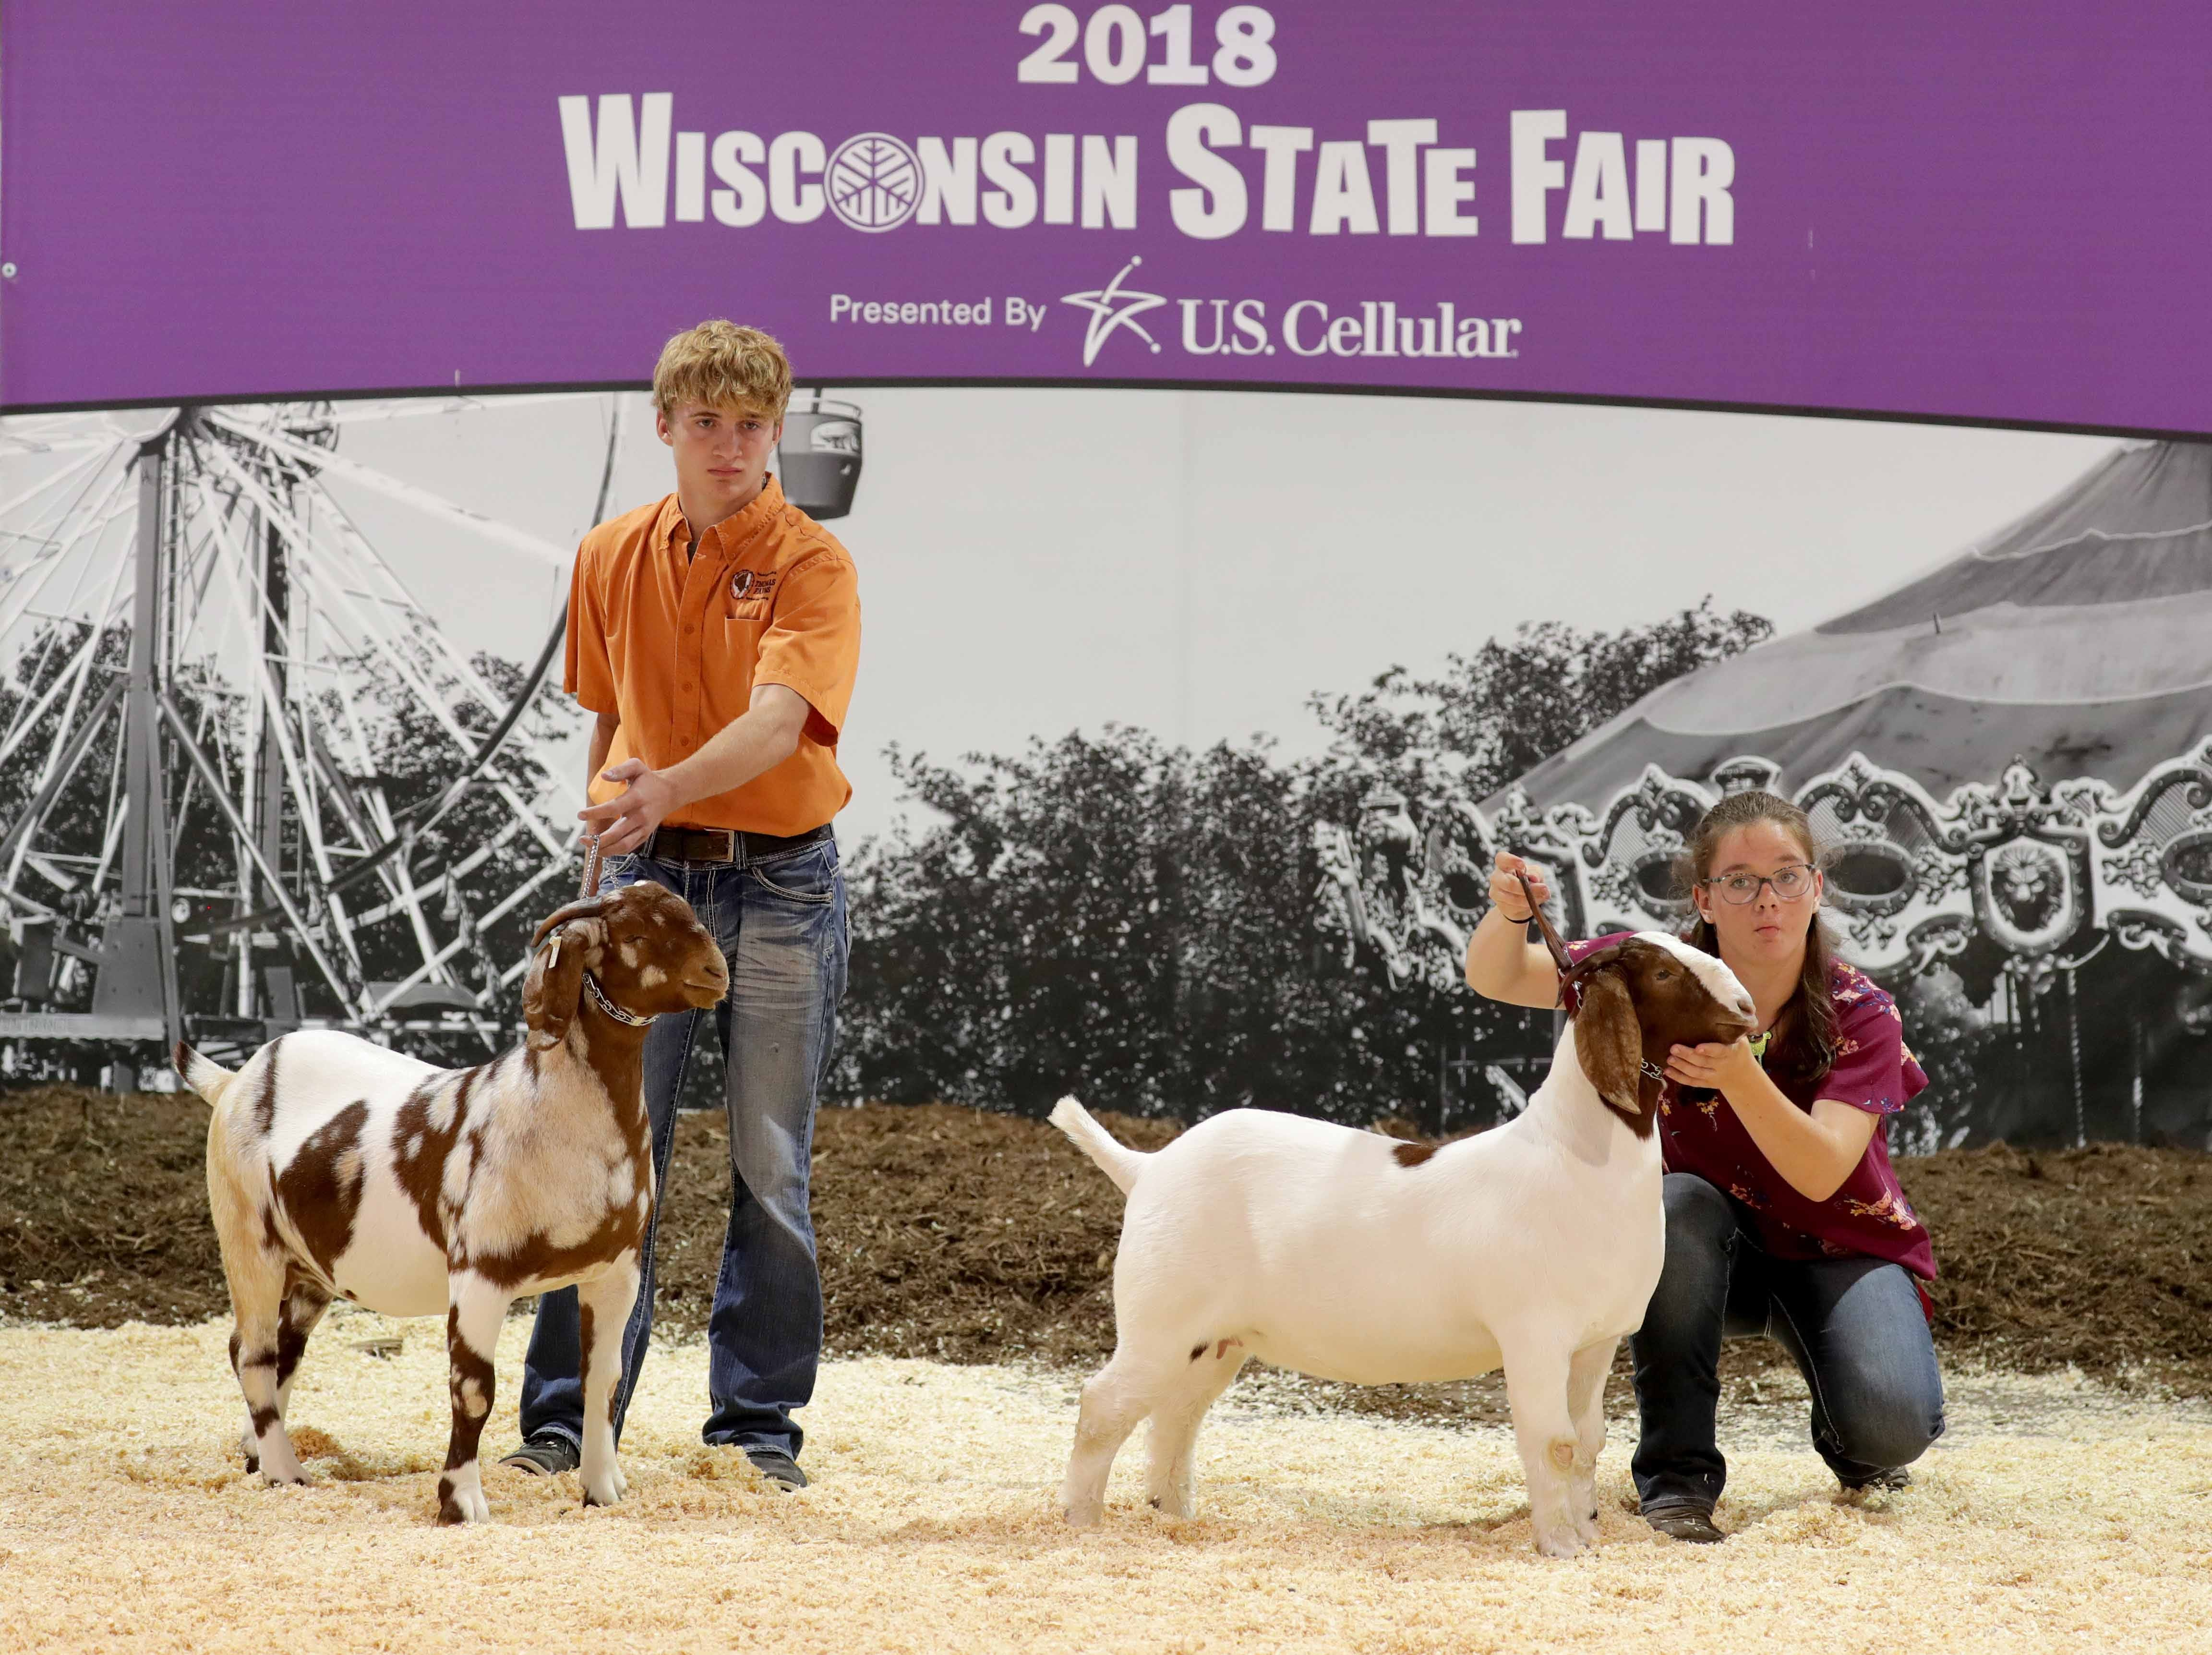 W-ANIMALS - Colton Tay (left), 16, of Cooksville IL., and Della Harrod, 13, from Hinckley IL., and a member of the Hinckley harvesters 4-H club show their goats during the during the Boer goat show.  Youth from across the area from various 4-H groups and agriculture organizations, descended on the Wisconsin State Fair grounds in West Allis to ready their animals for shows. The opening of the 167th Wisconsin State Fair took place at the Wisconsin State Fair grounds in West Allis on Thursday, August 2, 2018. The fair runs through Sunday, August 12  -  Photo by Mike De Sisti / Milwaukee Journal Sentinel